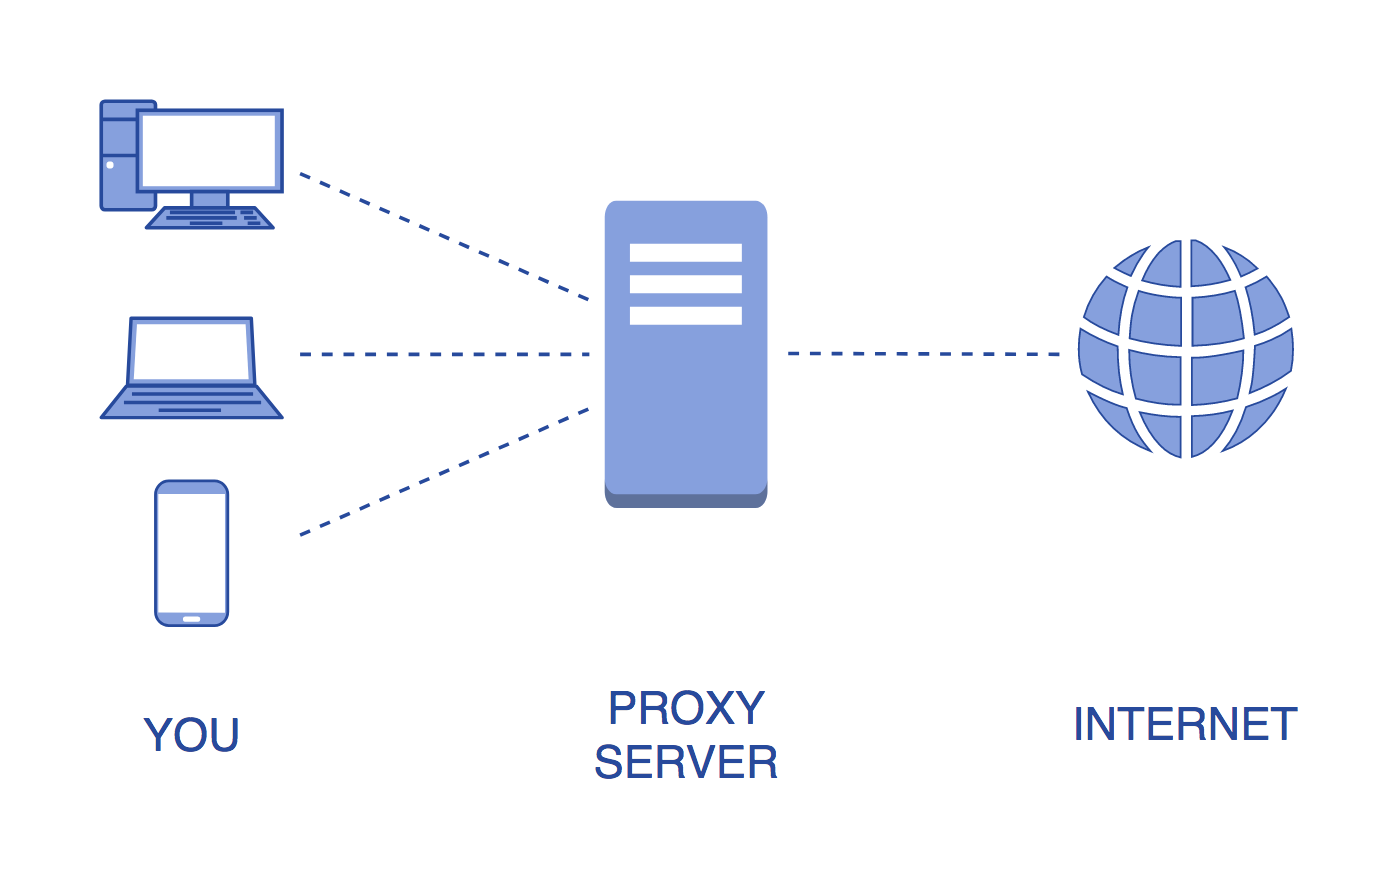 What parameters determine the quality of the proxy server – Makeanysite